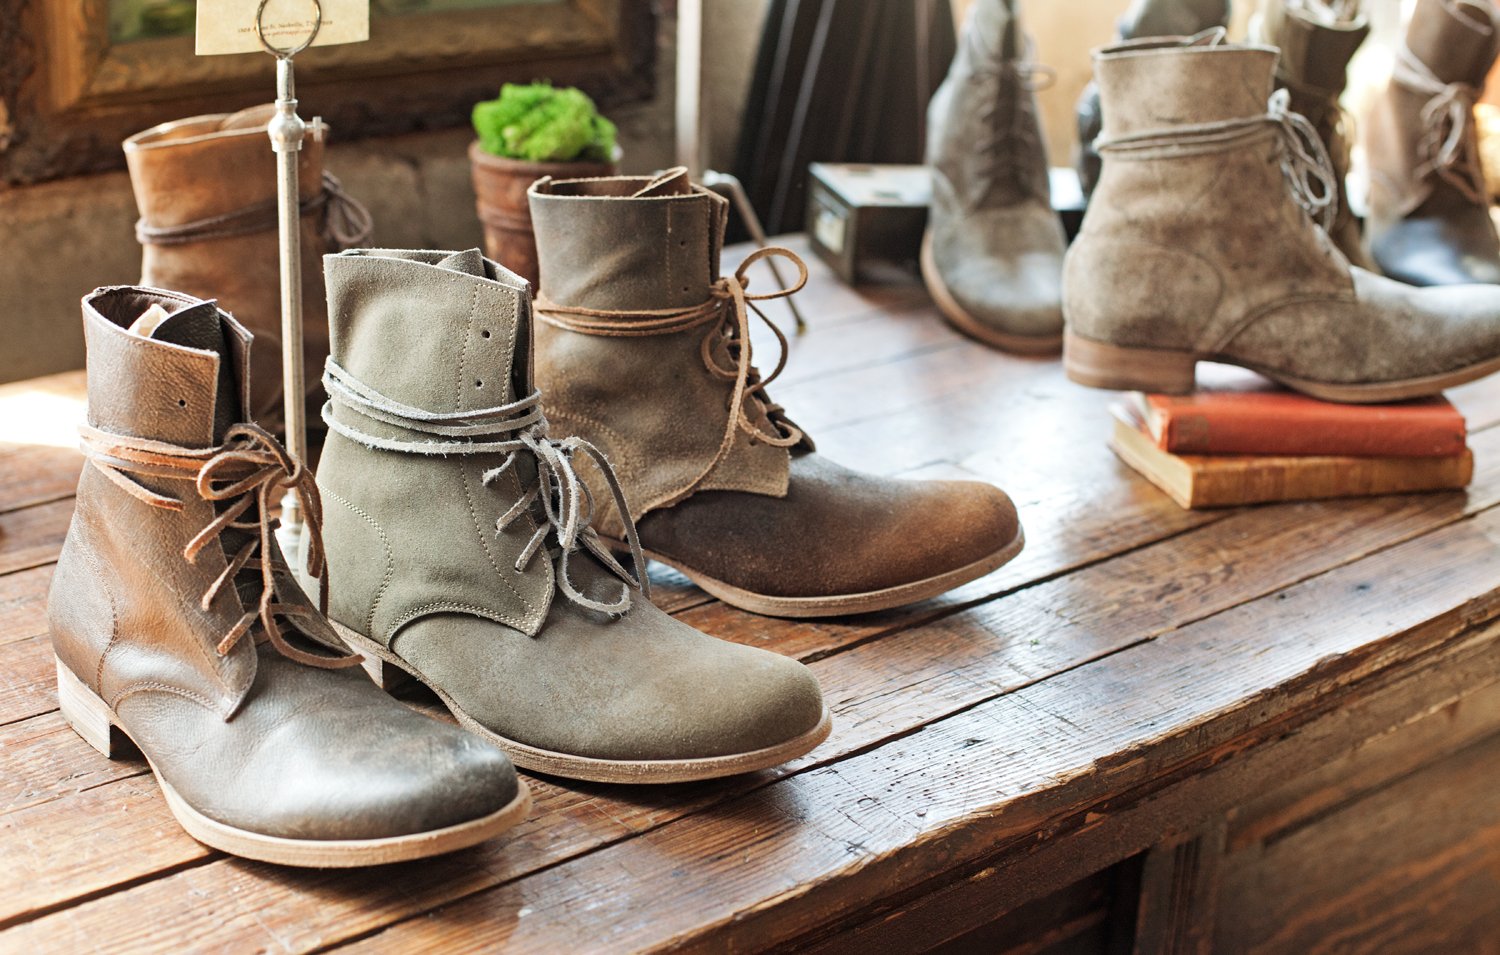 Peter Nappi creates hand-crafted, limited-run leather boots by artisans in Italy.